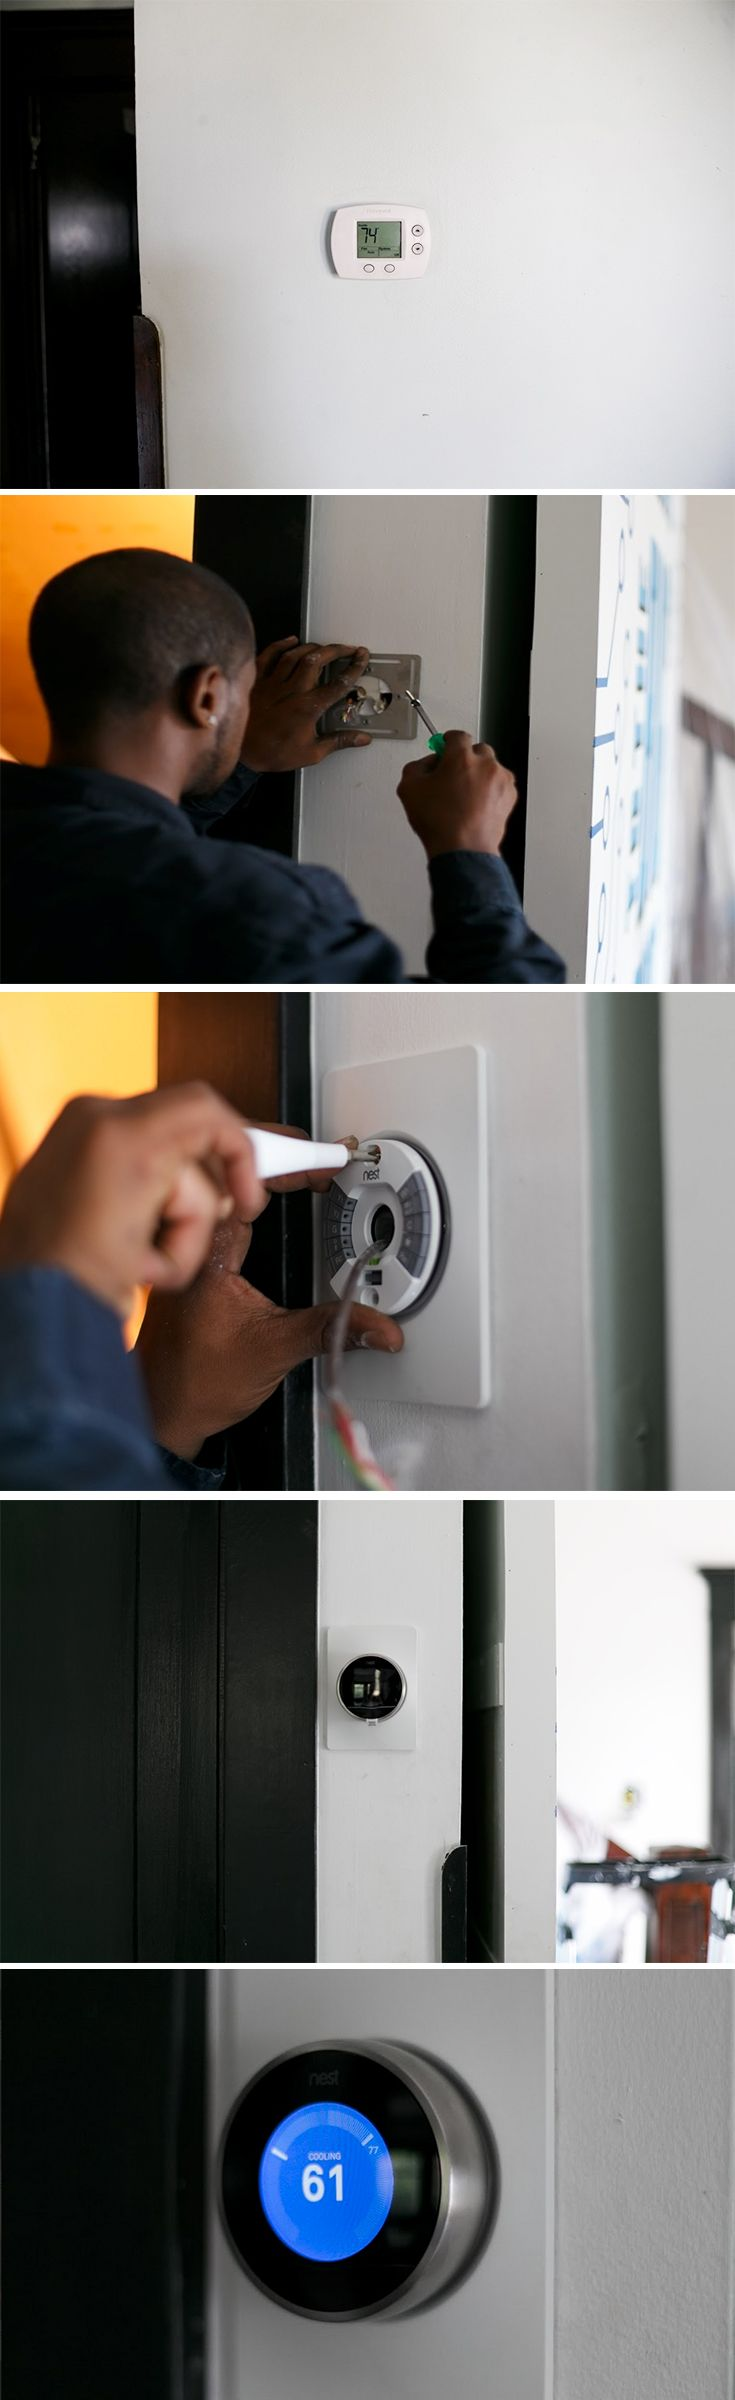 Out with the old, in with the new. A new Nest Thermostat gets added to the wall of the Big House.  With the Nest Thermostat we made installation simple. Three out of four people install the Nest Thermostat themselves.